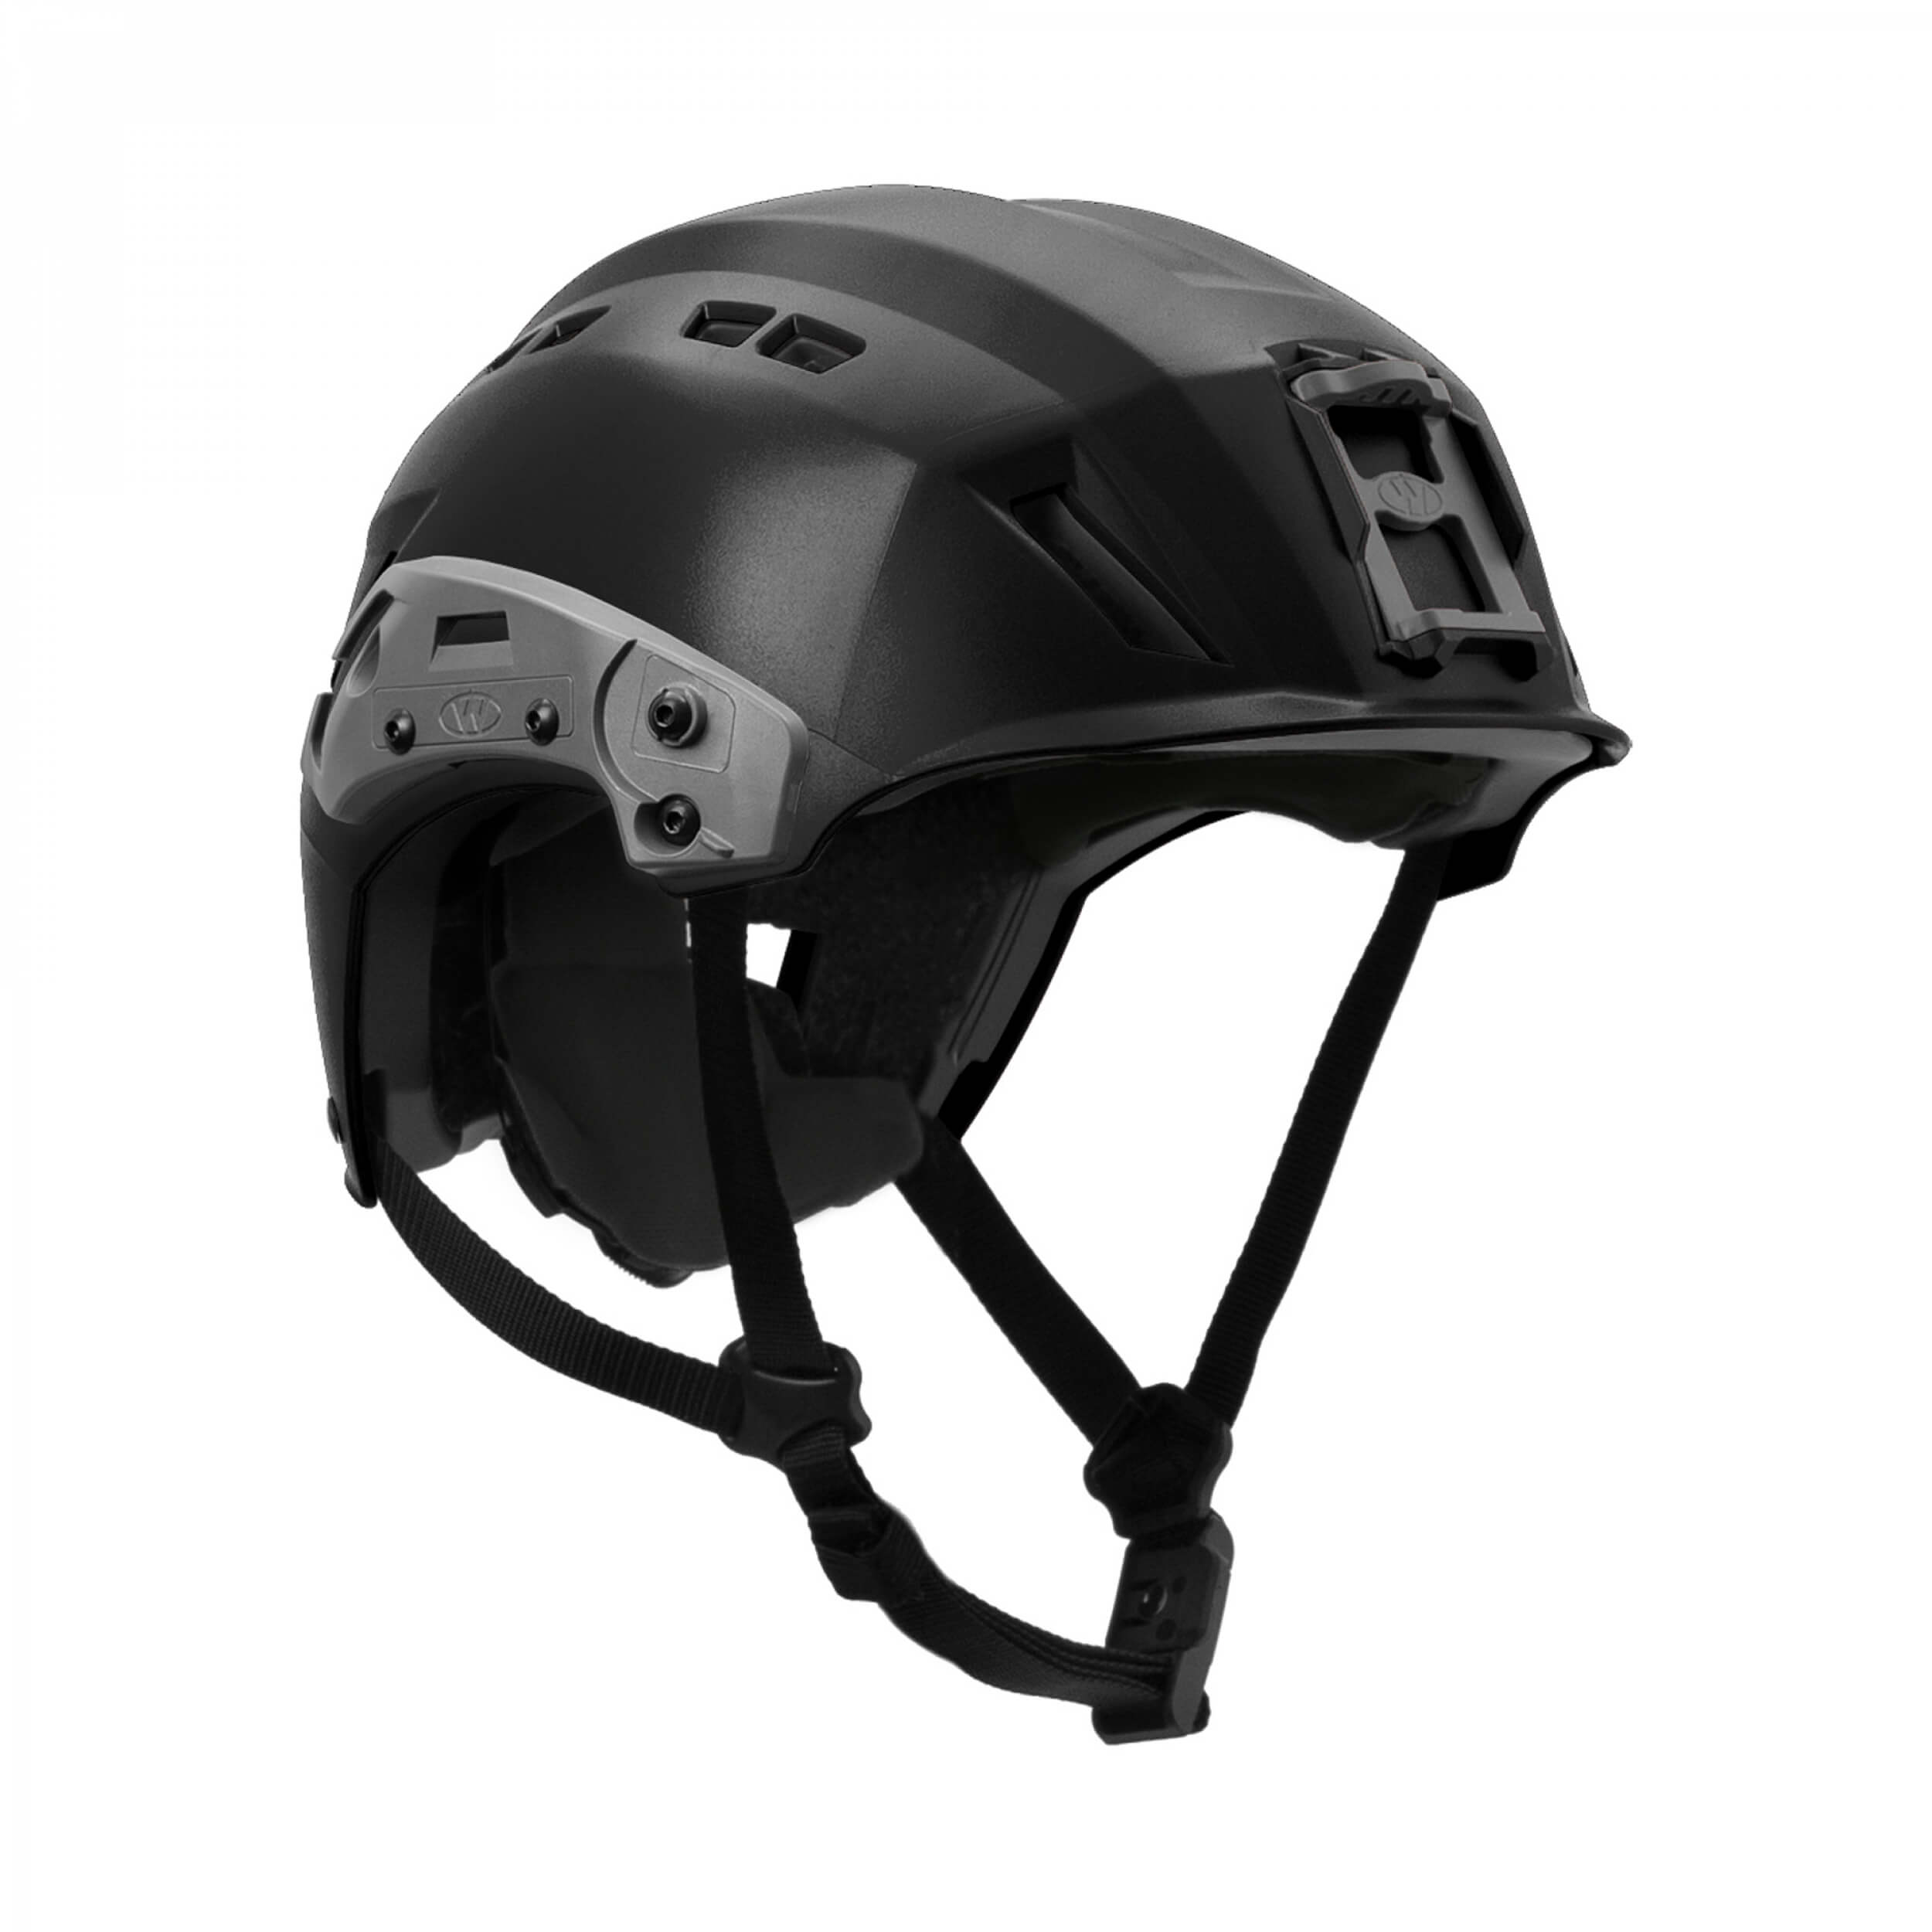 Team Wendy EXFIL SAR Backcountry Helmet with Rails black